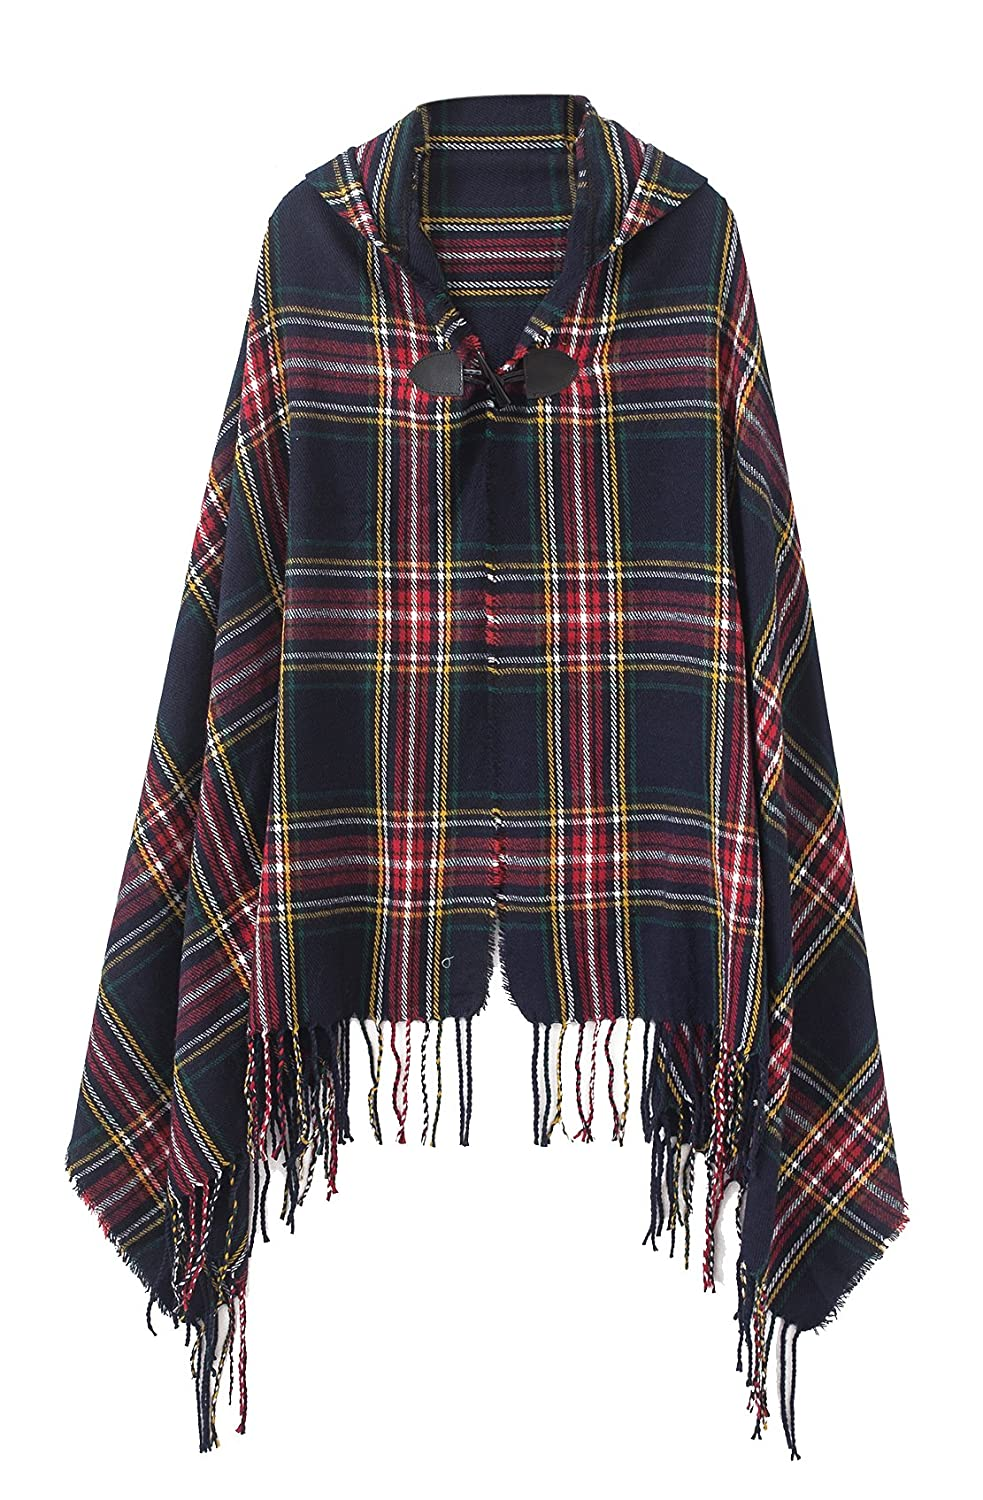 Urban CoCo Women's Vintage Plaid Knitted Tassel Poncho Shawl Cape Button Cardigan (Series 3 Wine Red) Bingo E-Commerce RS16058WR